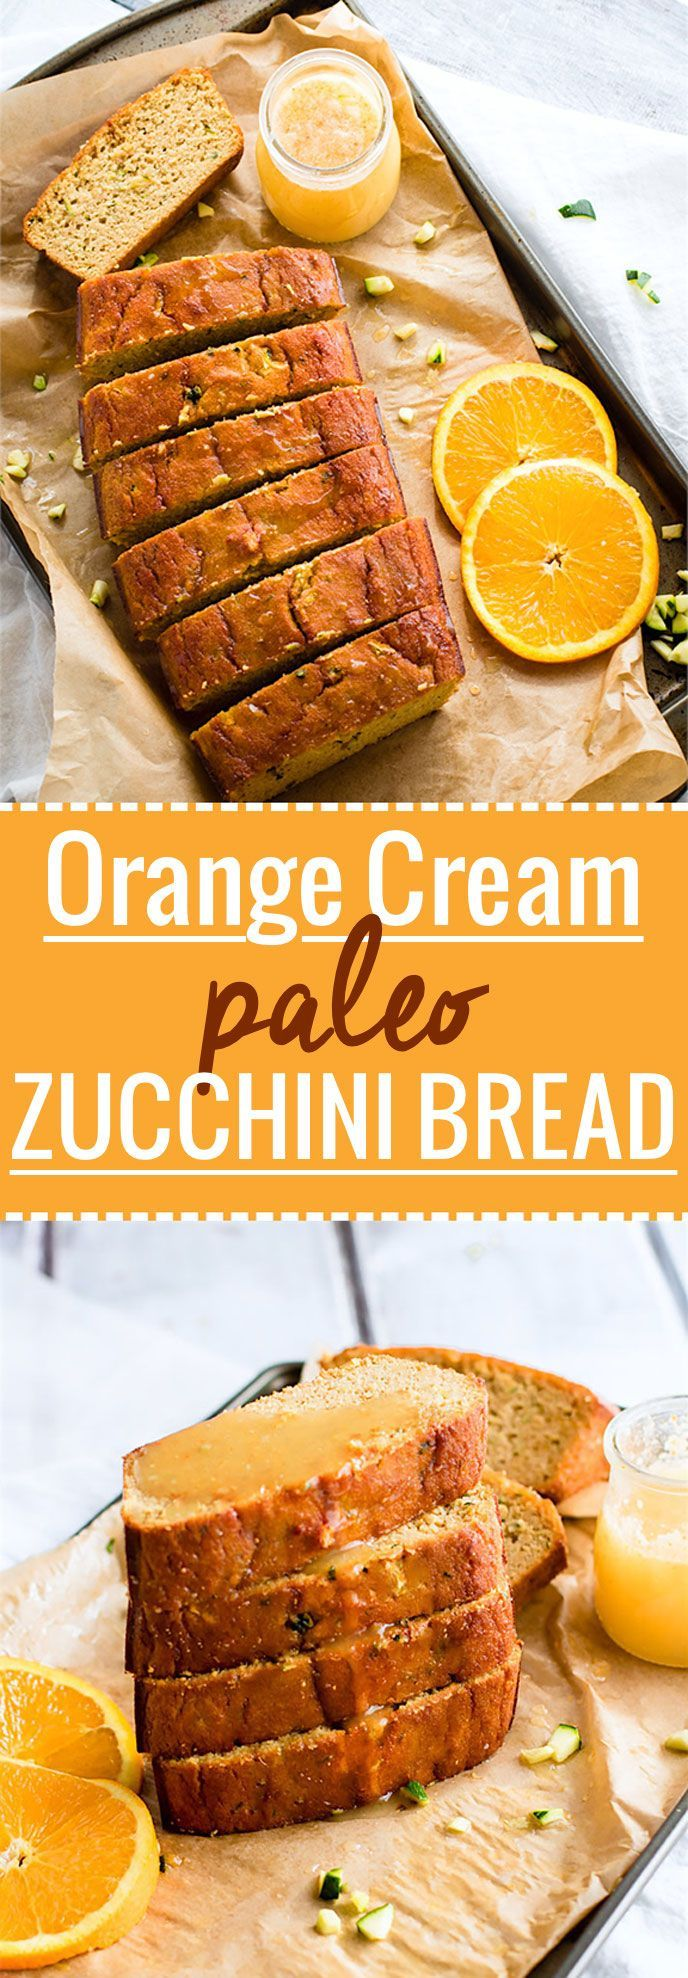 Zesty Orange Cream Paleo Zucchini Bread! A classic zucchini bread recipe made healthy, paleo, and packed with vitamin C! This paleo zucchini bread is an easy to make and super refreshing with a ginger glaze to drizzle on top.  /cottercrunch/